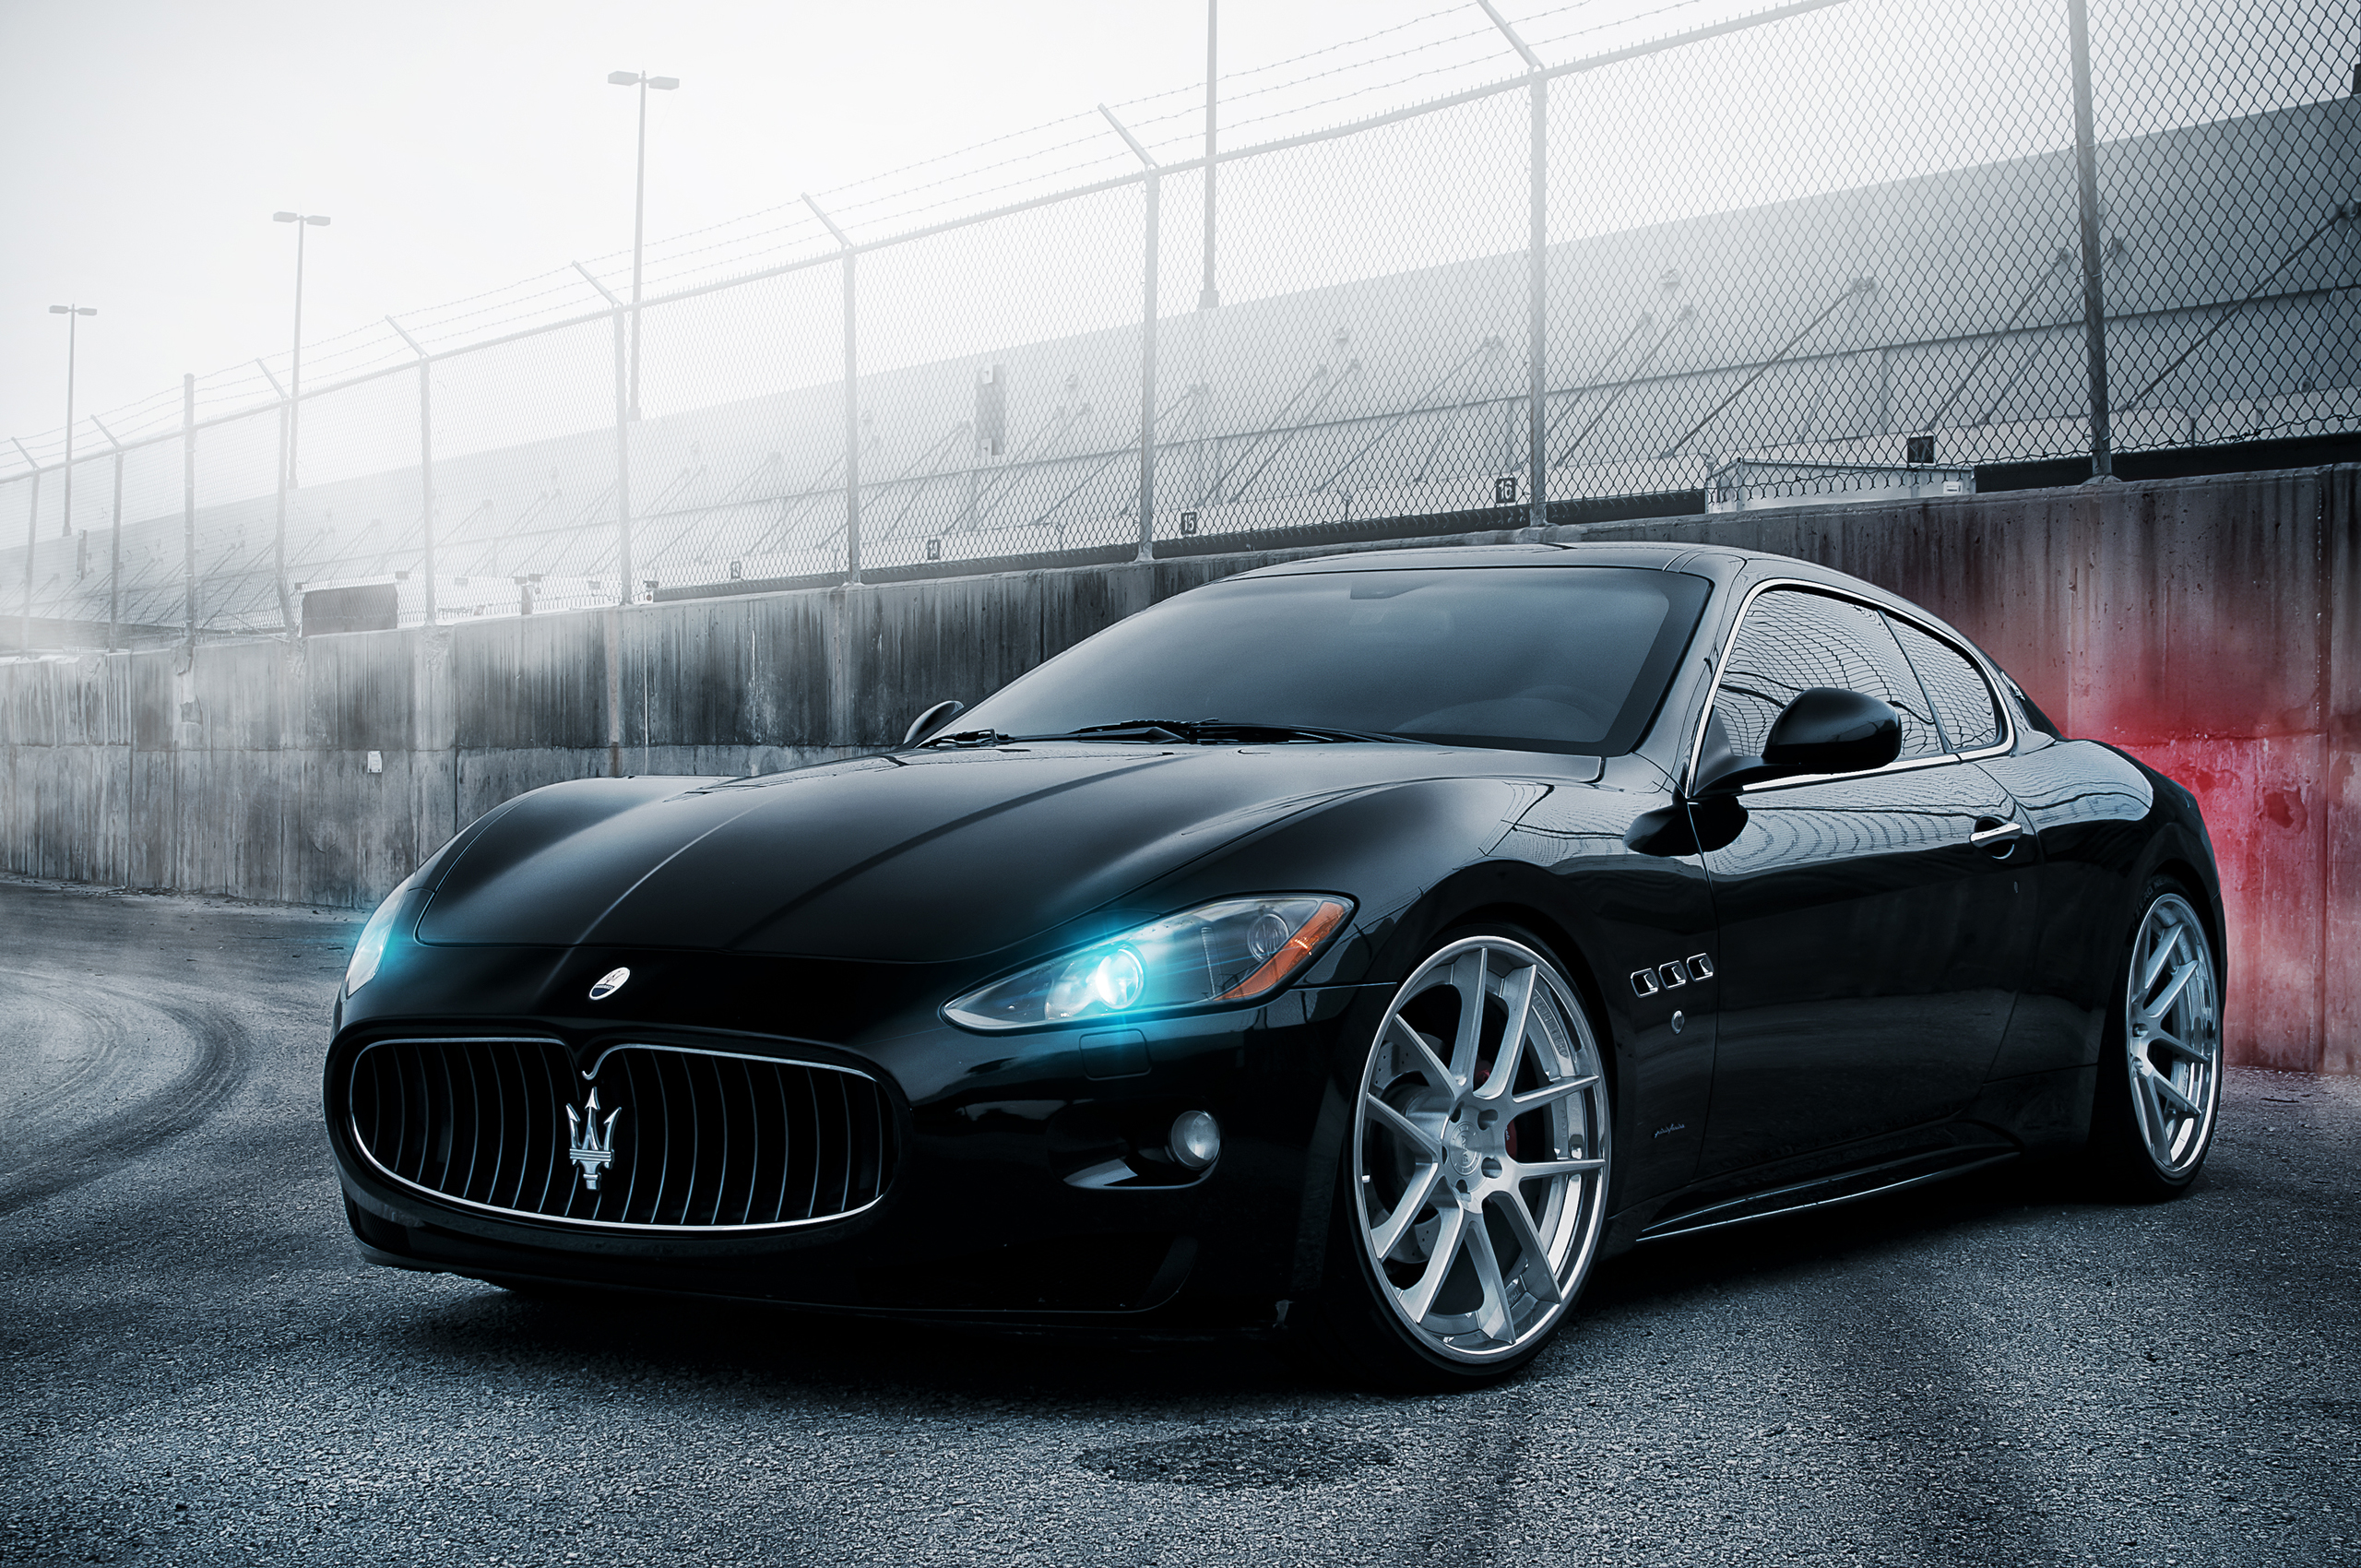 526 Maserati HD Wallpapers   Background Images - Wallpaper Abyss